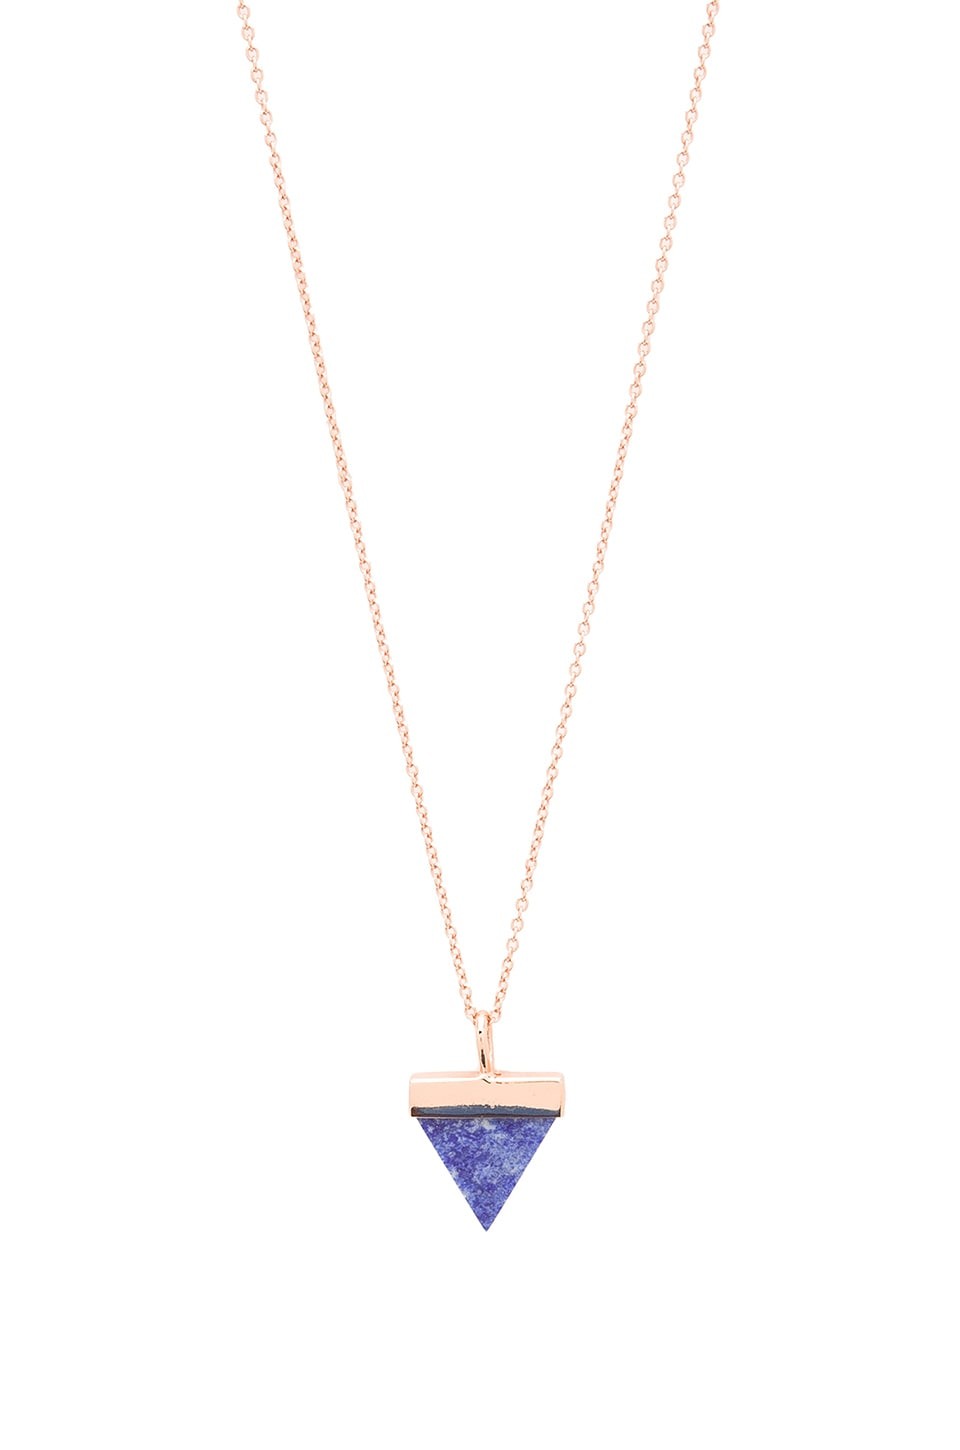 Samantha Wills Aztec Dreaming Necklace in Rose Gold & Lapis